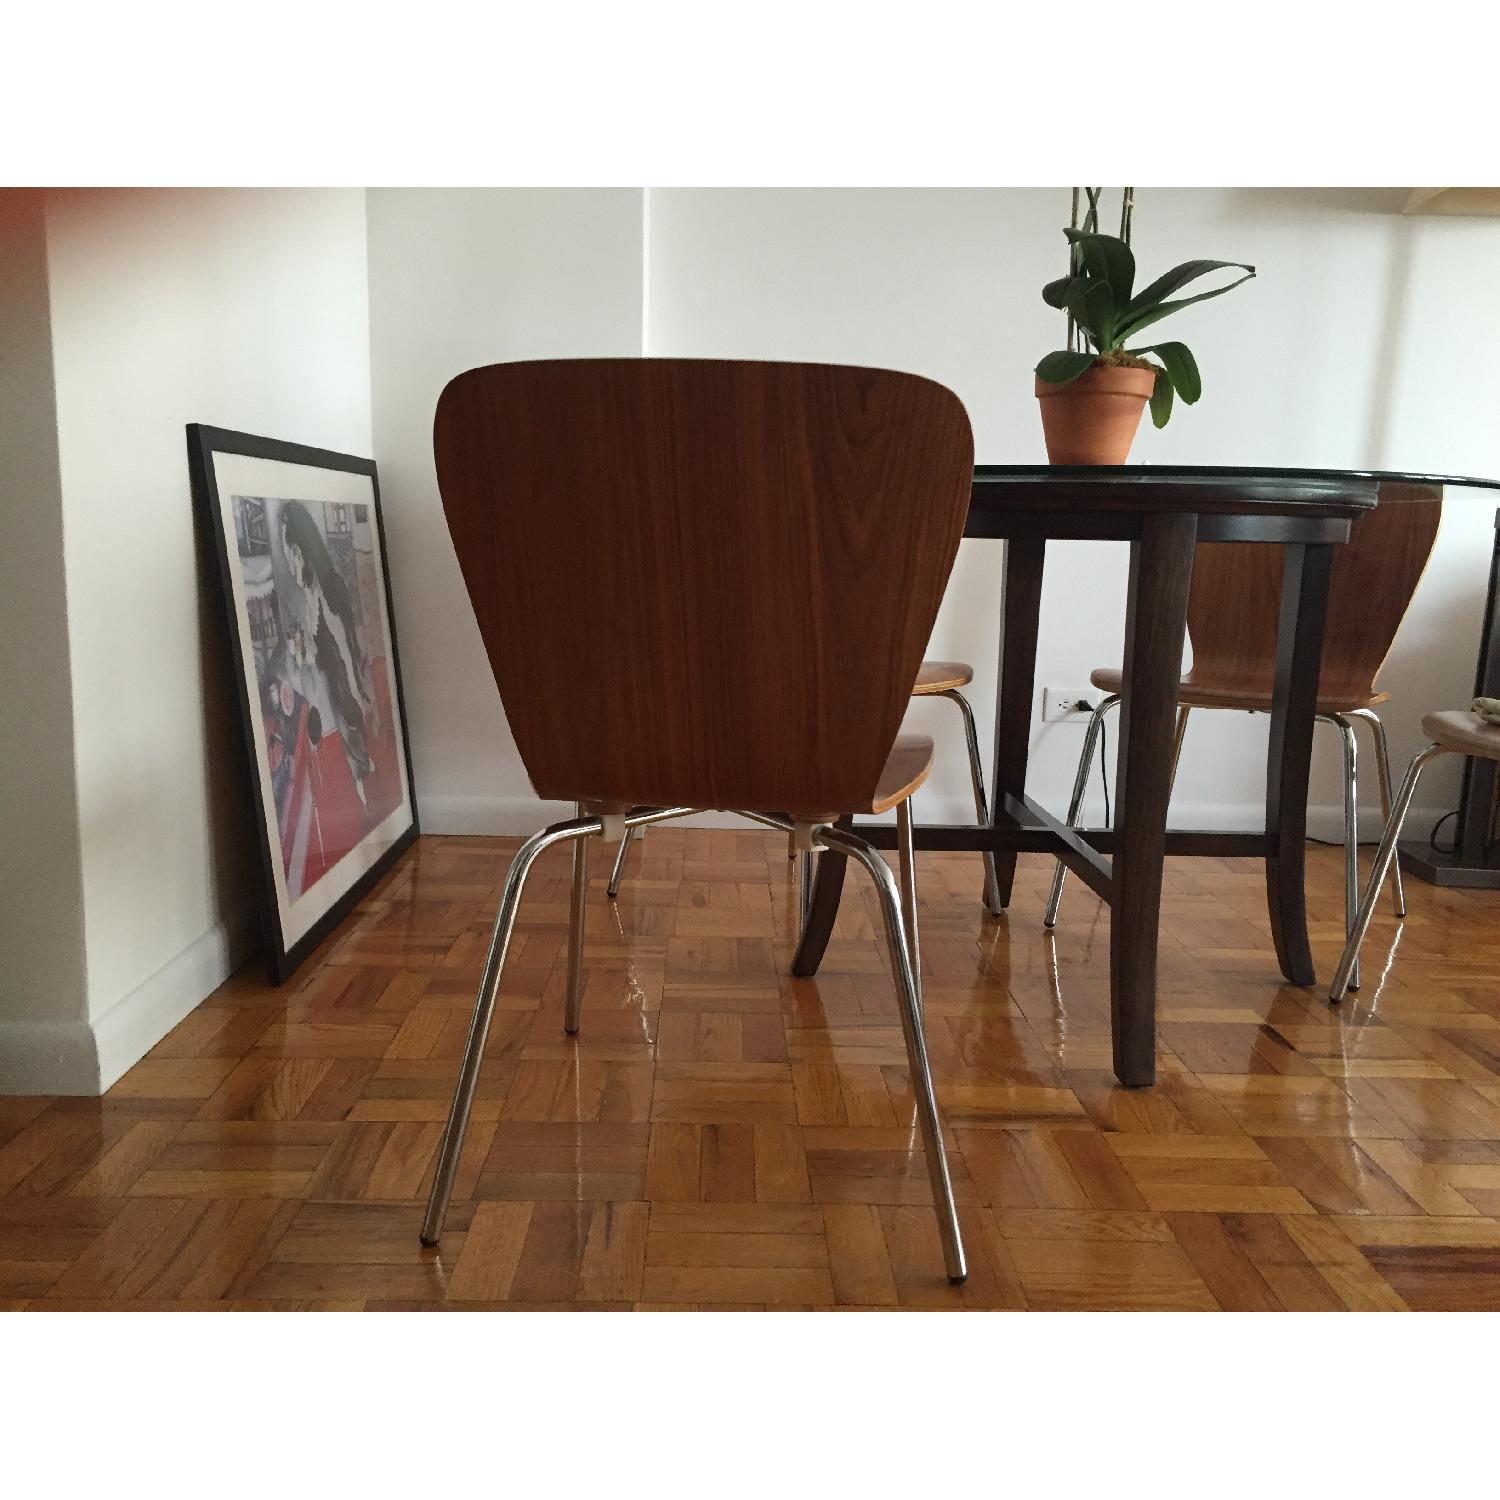 Crate & Barrel Modern Dining Chairs in Walnut Wood - image-2